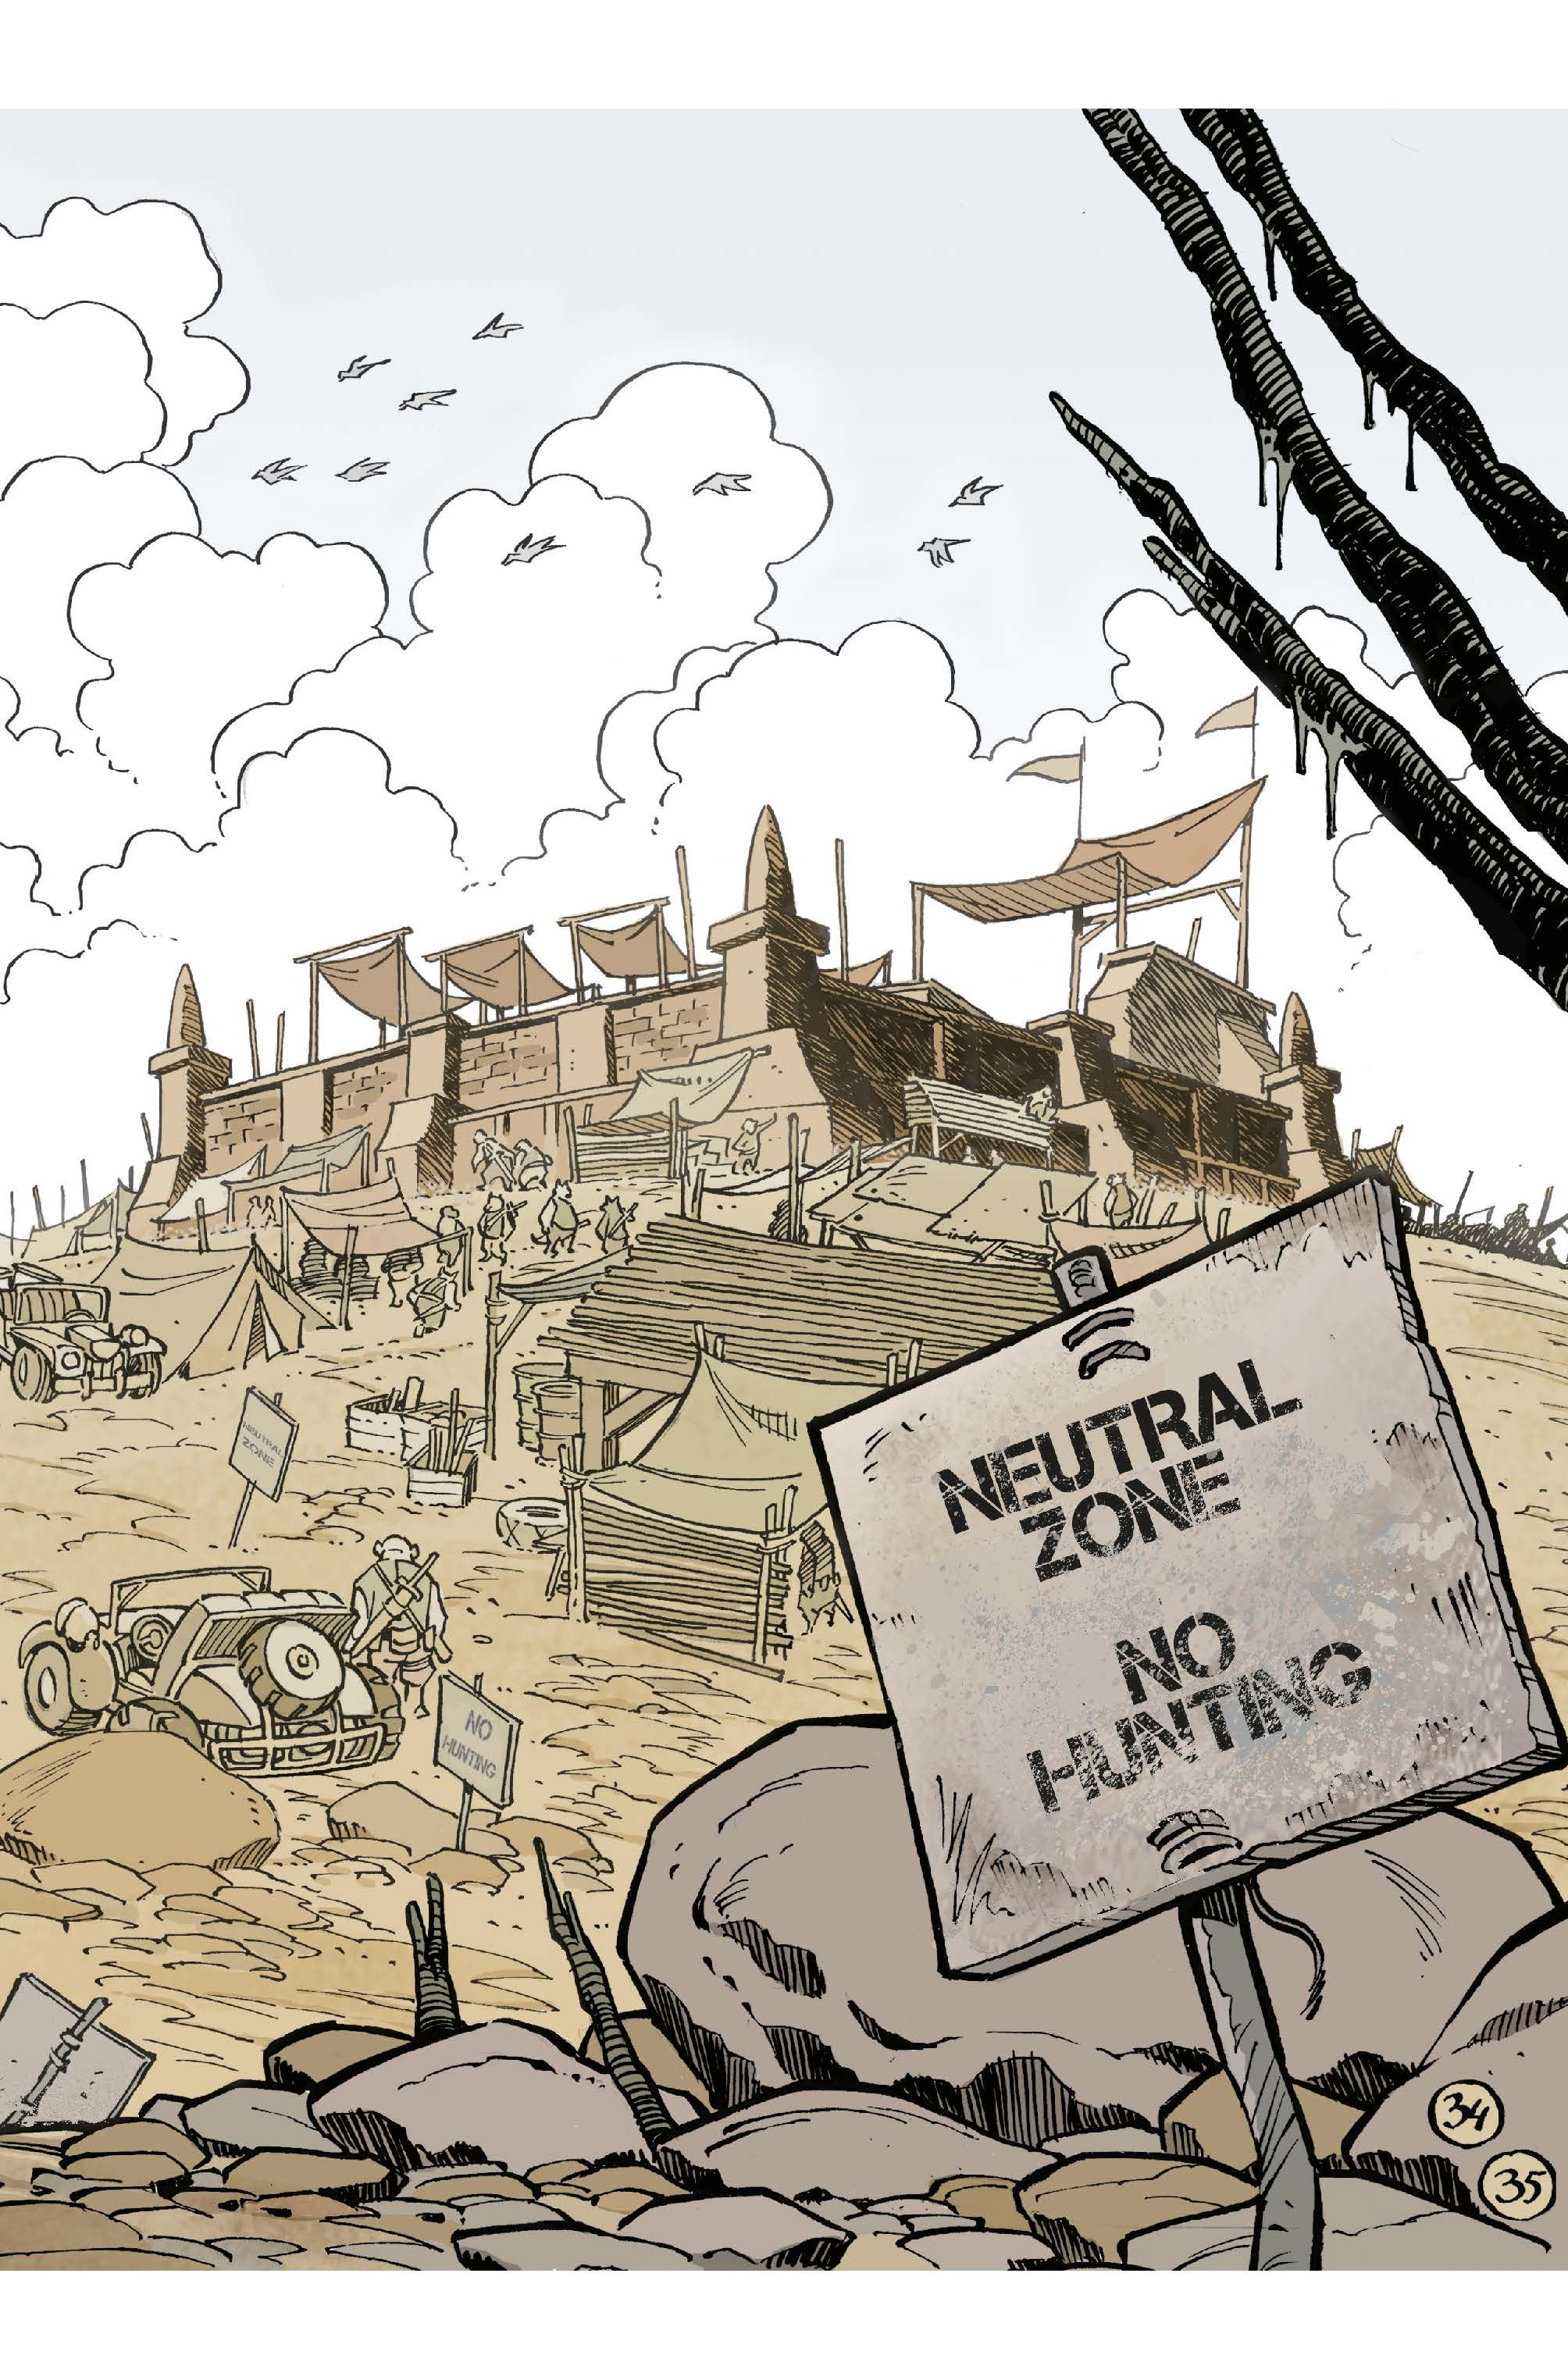 Neutral Zone - No Hunting